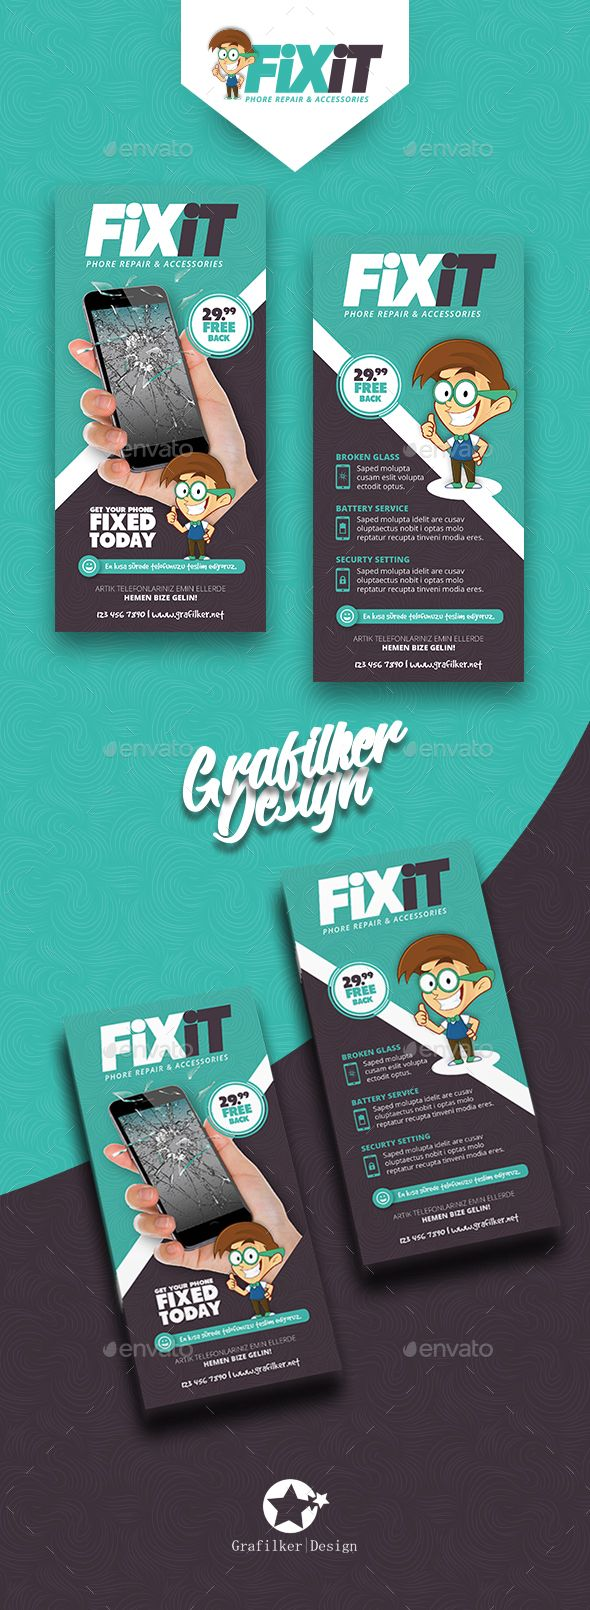 Phone Repair Flyer Templates Phone Repair Flyer Templates Fully layeredINDDFully layeredPSD300 Dpi, CMYKIDML format openIndesign CS4 or laterCompletely editable, print ready Text/Font or Color can be altered as needed All Image are in vector format, so can customise easily Photos are not included in the file Photo links in Help.txt file http://www.dafont.com/tondu.font http://